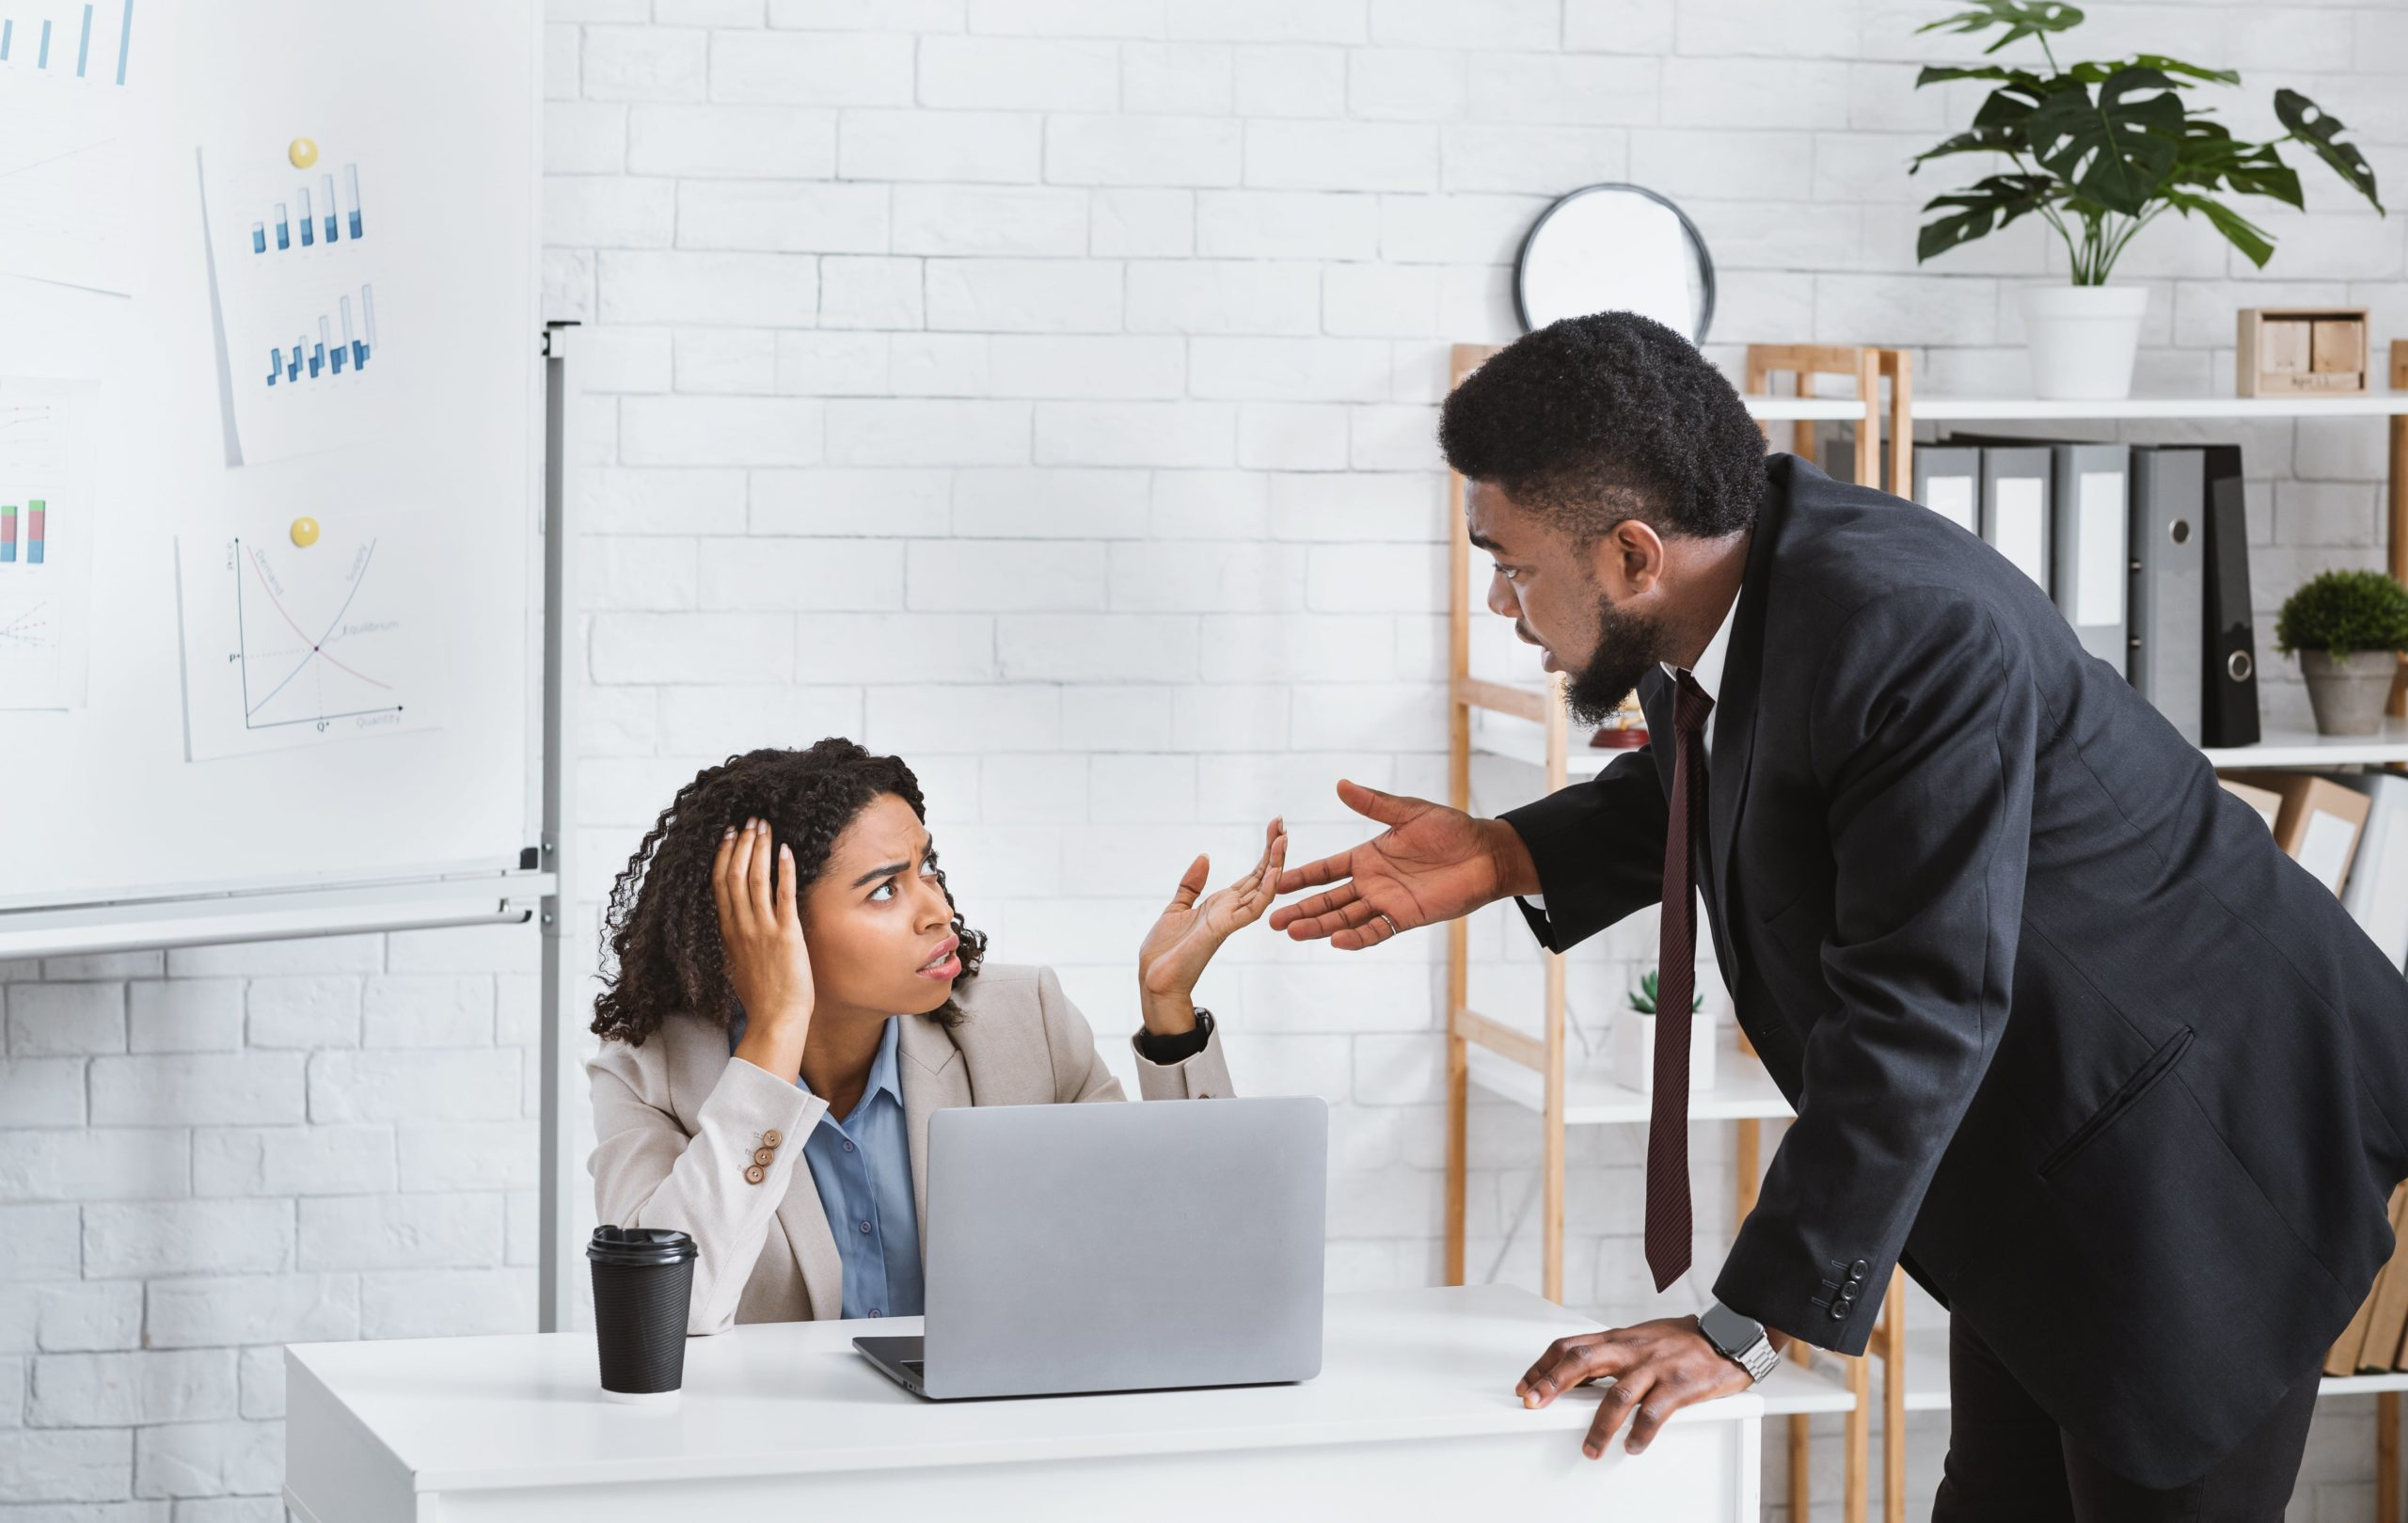 A man harasses a female colleague at her desk. This form of workplace discrimination is considered unfair discrimination, and unless your human resources department intervenes, could result in the female colleague filing a civil lawsuit against your company. Protect your organisation with business legal insurance.